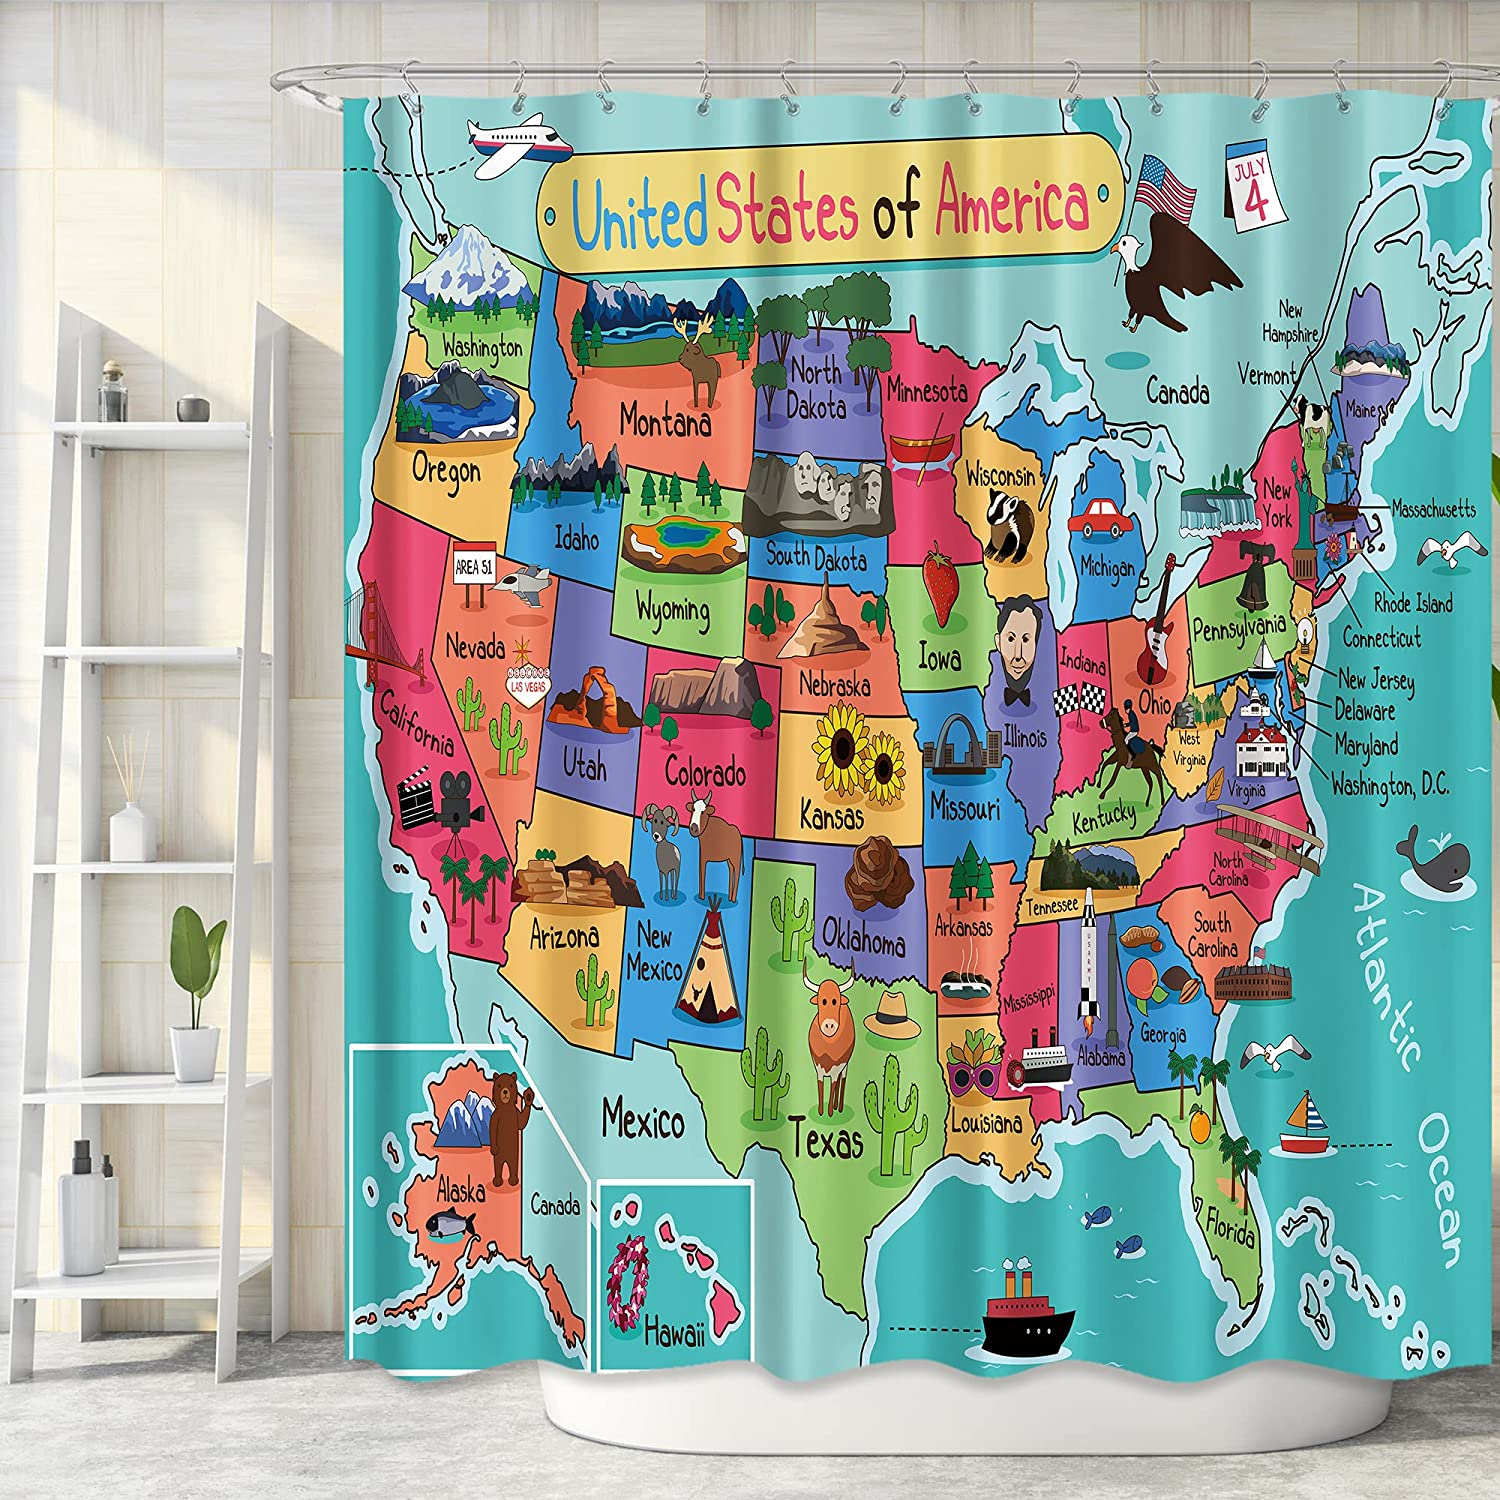 Riyidecor Fabric Map Shower Curtain US Inch Bathroom Virginia Beach Mall for 72Wx72H 70% OFF Outlet